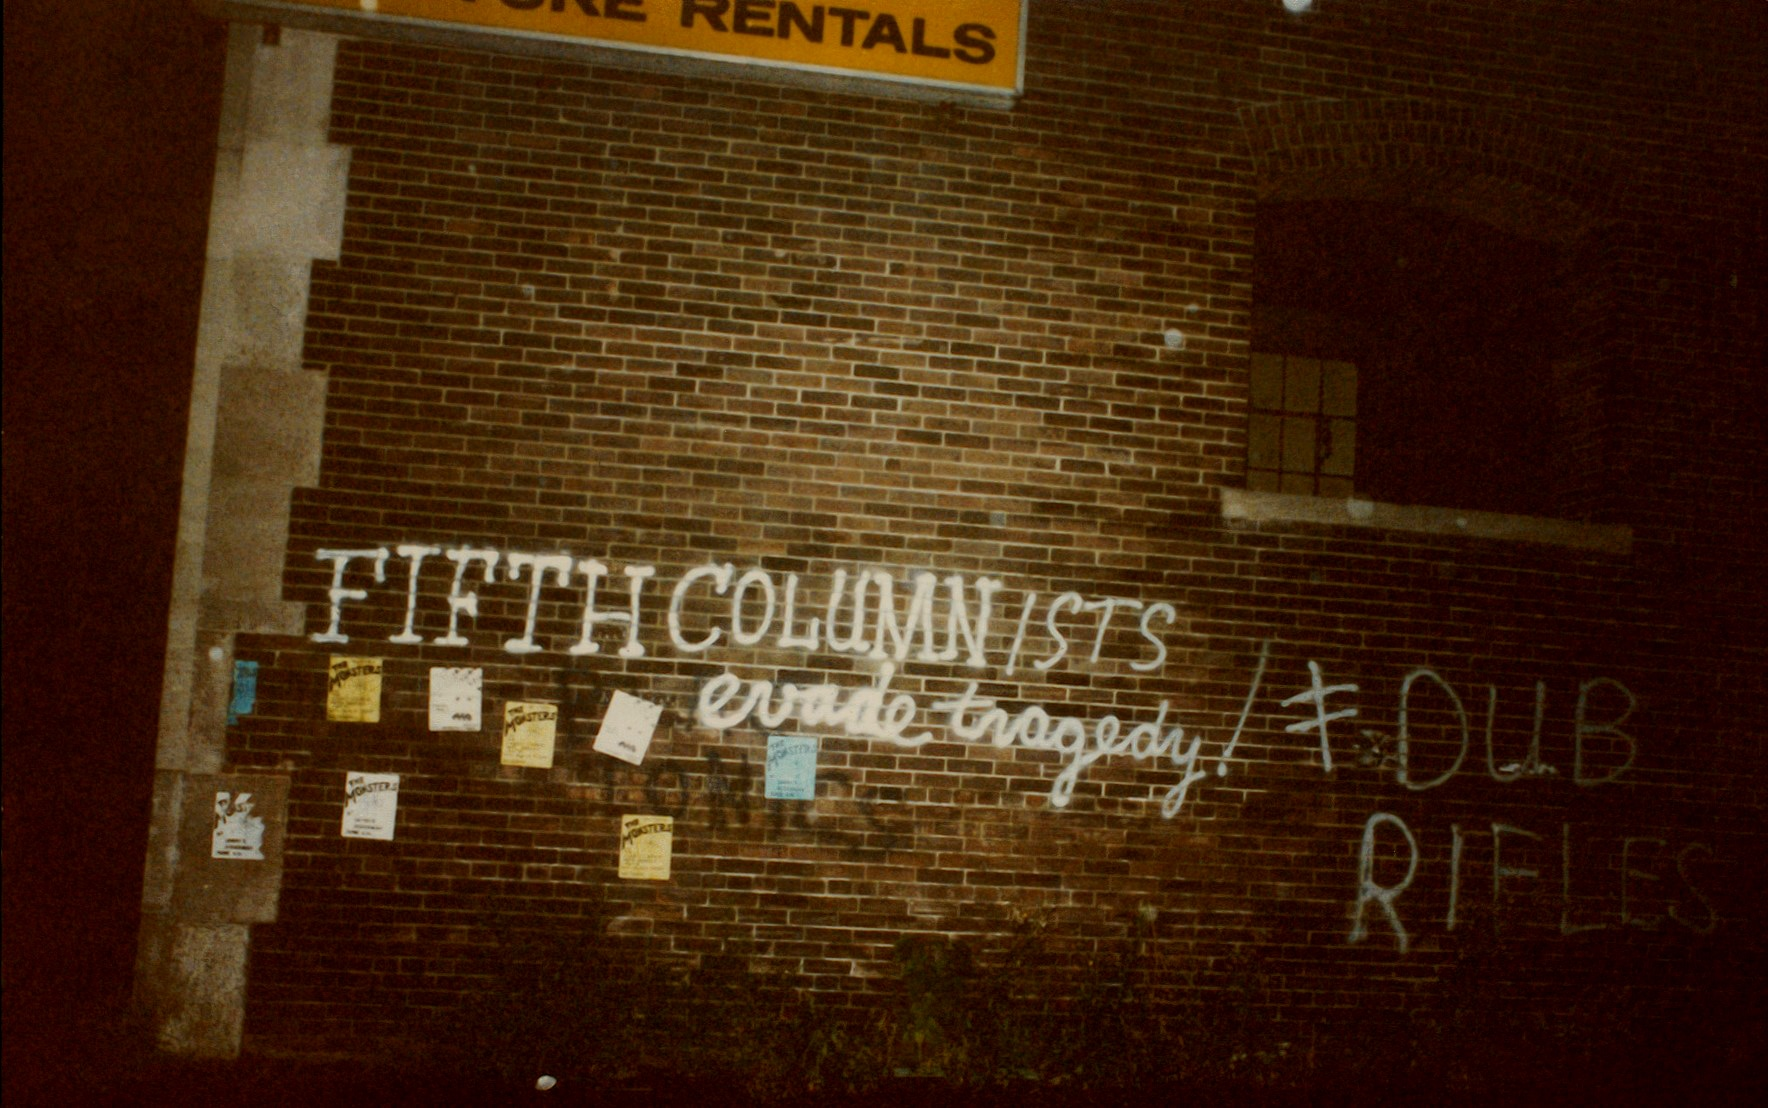 """A colour photo of a brick wall with the words """"Fifth Columnists evade tragedy"""" written on it in spray paint."""